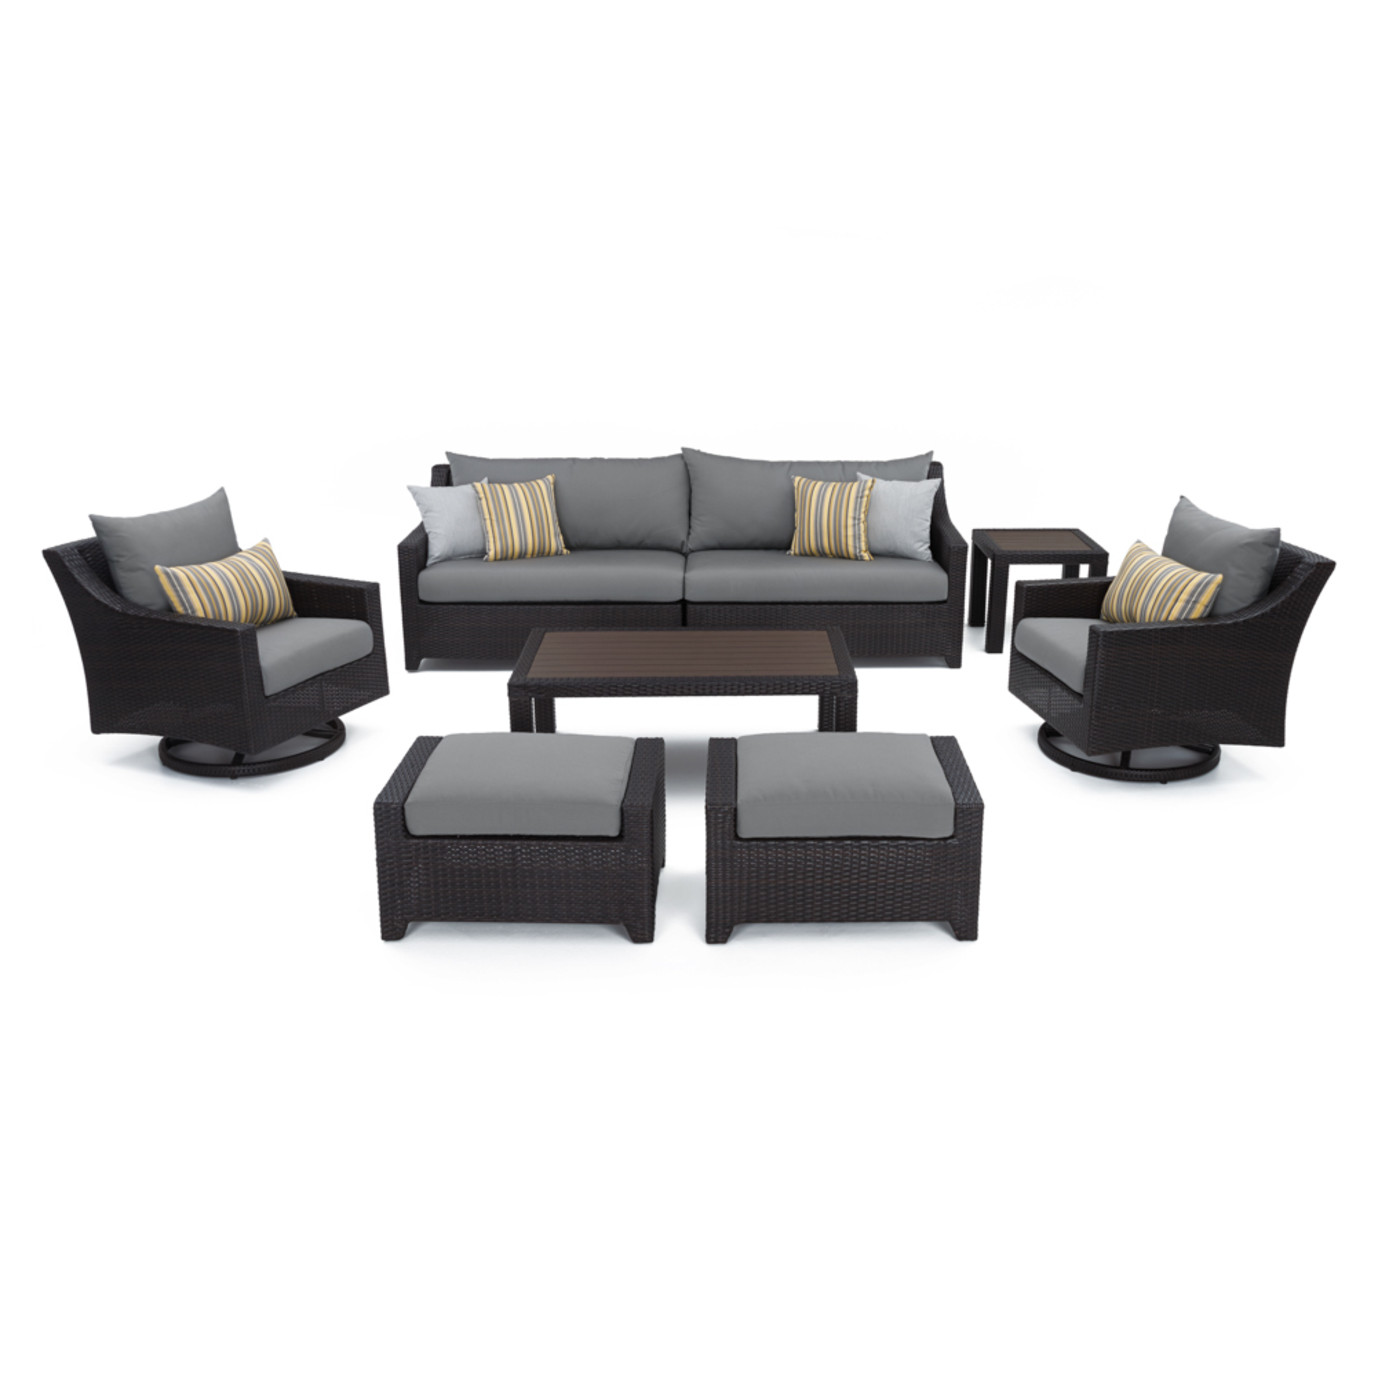 Deco™ Deluxe 8pc Sofa & Club Chair Set - Charcoal Gray